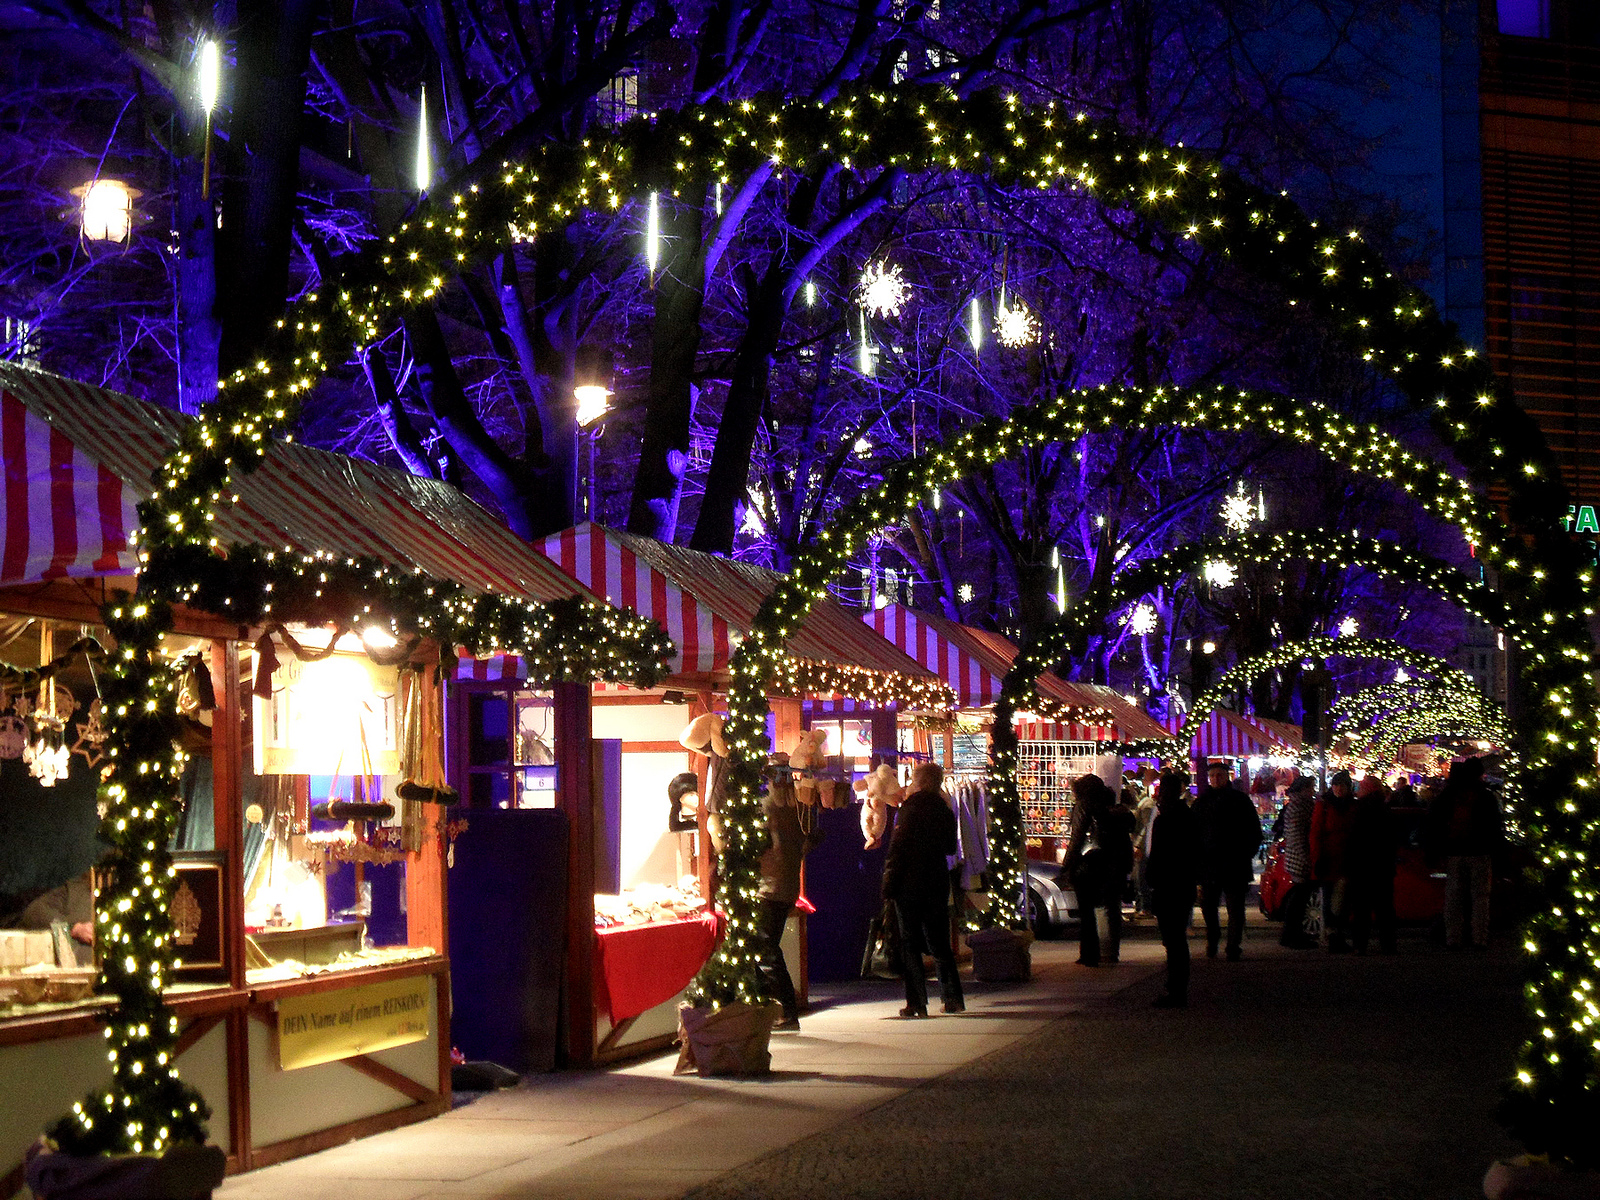 Christmas market in Berlin, Germany. Credit onnola